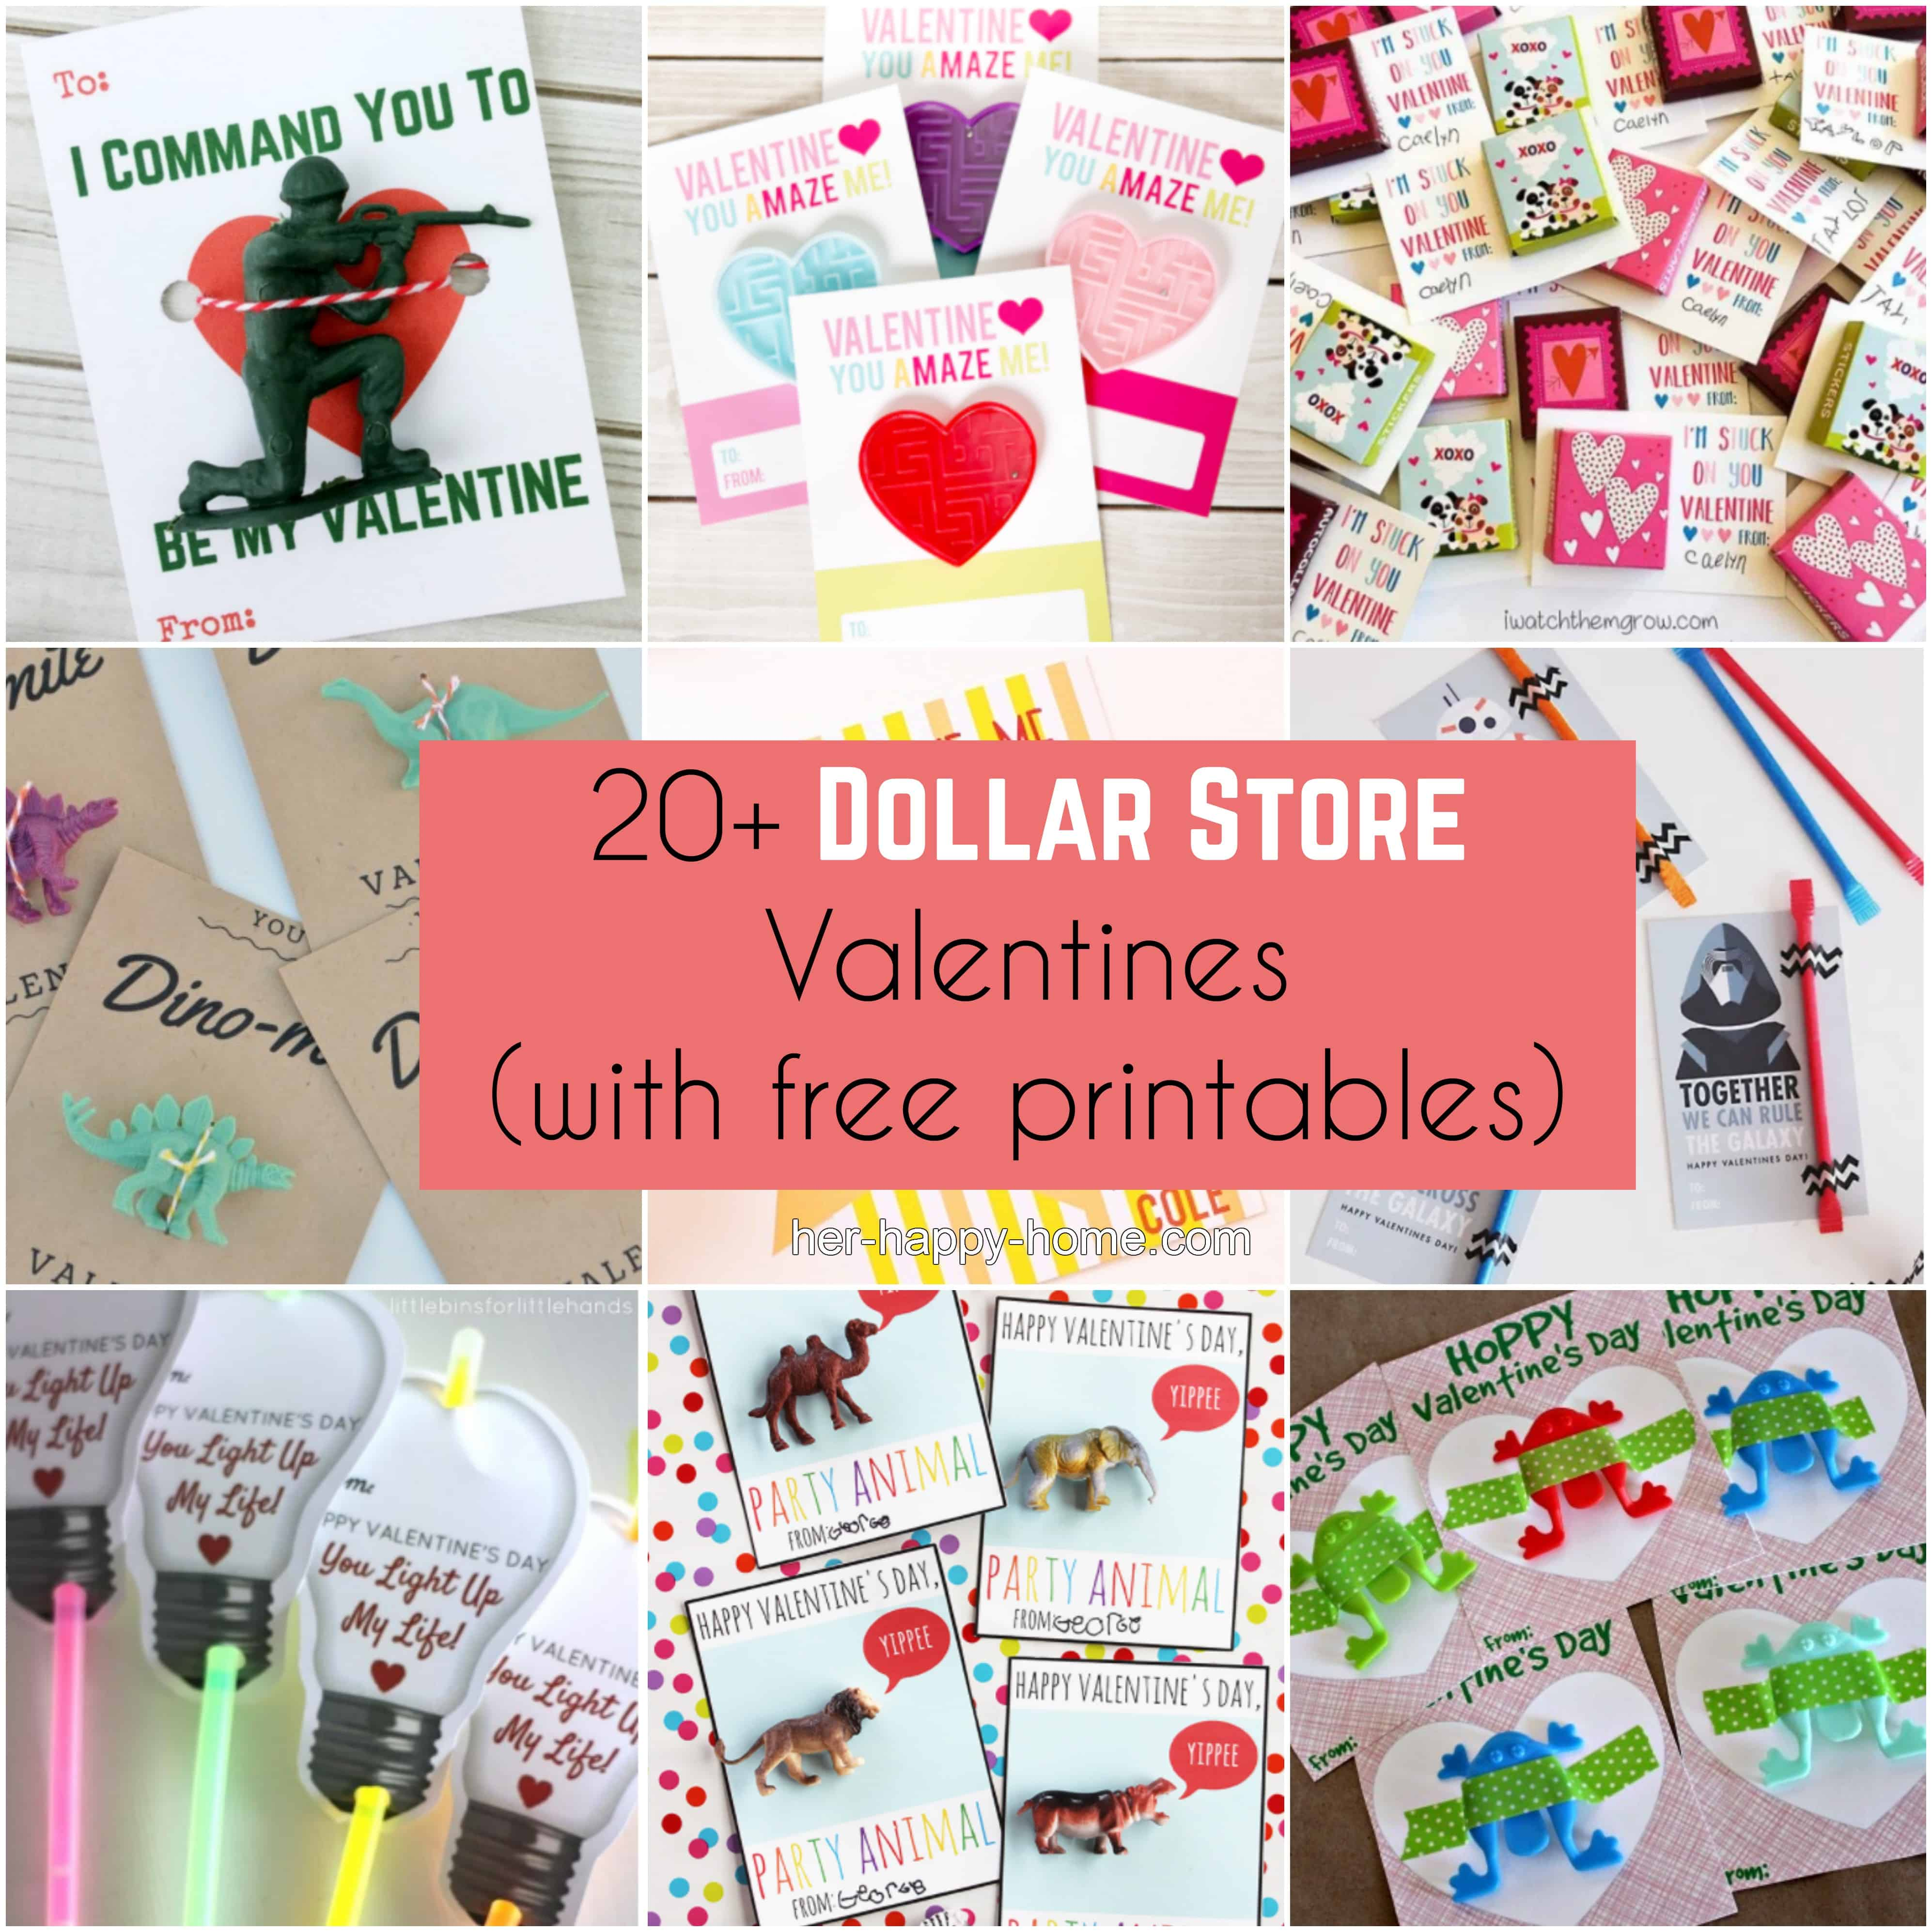 20+ Dollar Store Valentines (with free printables)